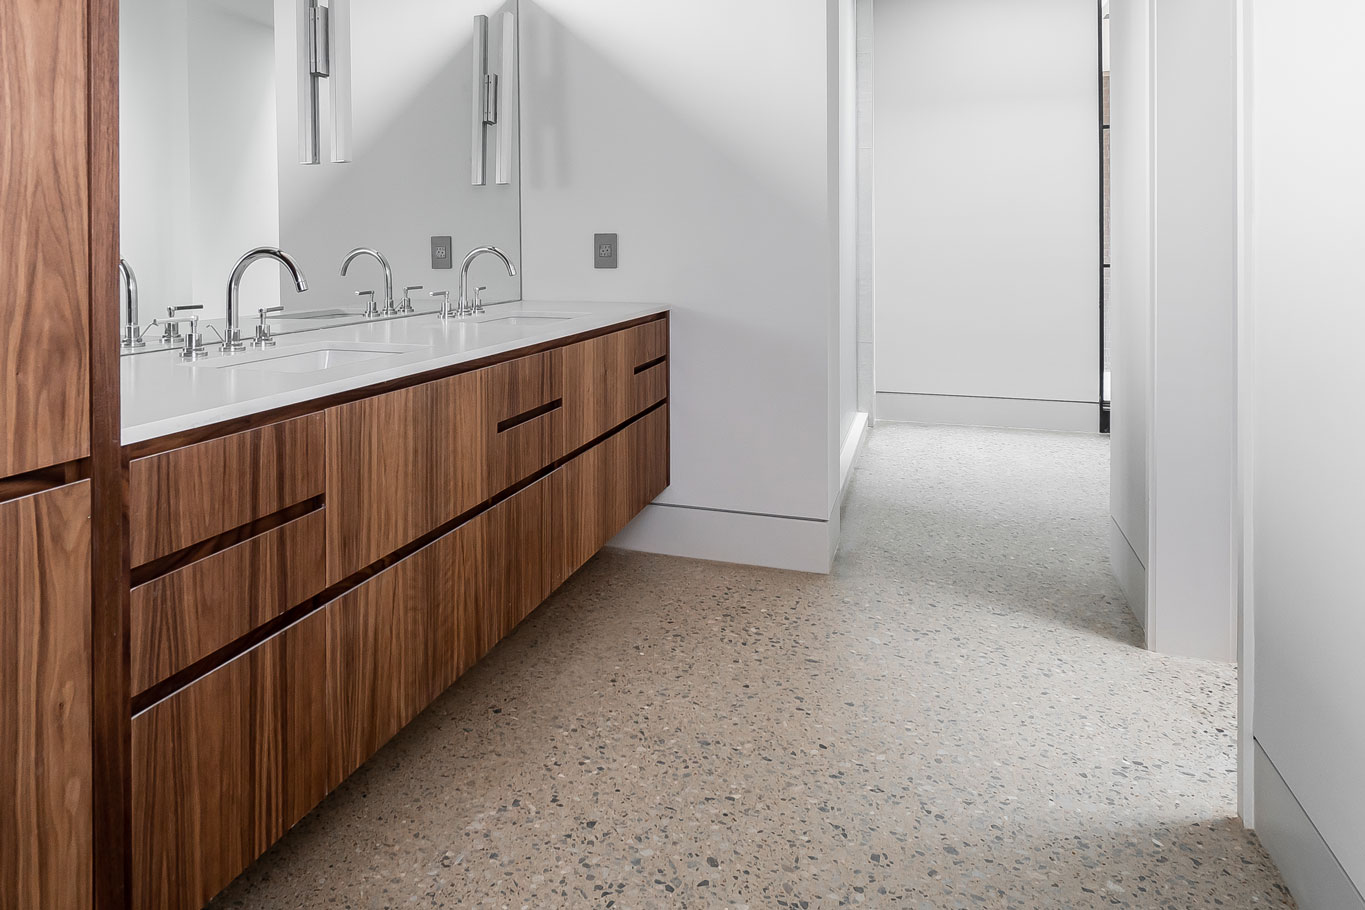 Moden-Polished-Concrete-Bathroom-Floor.jpg